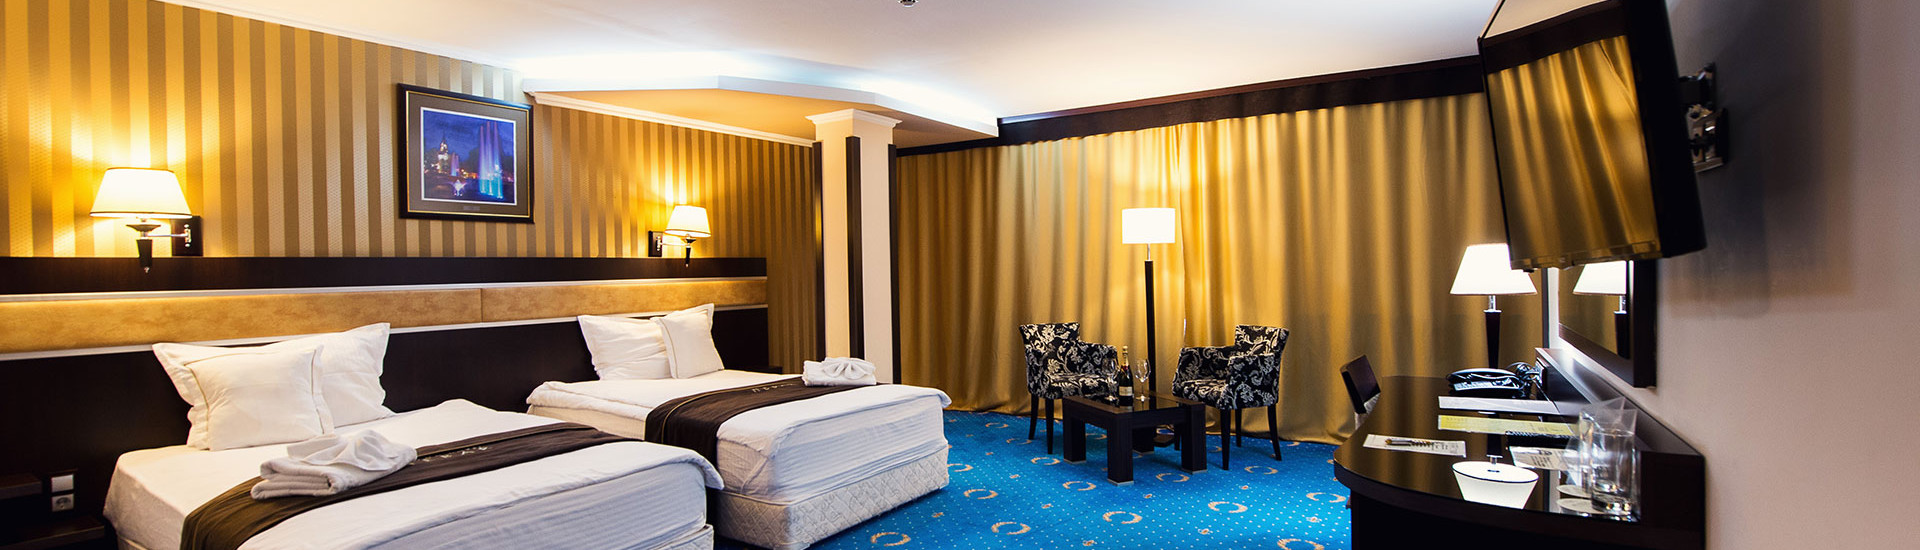 Grand Hotel Hebar - Rooms